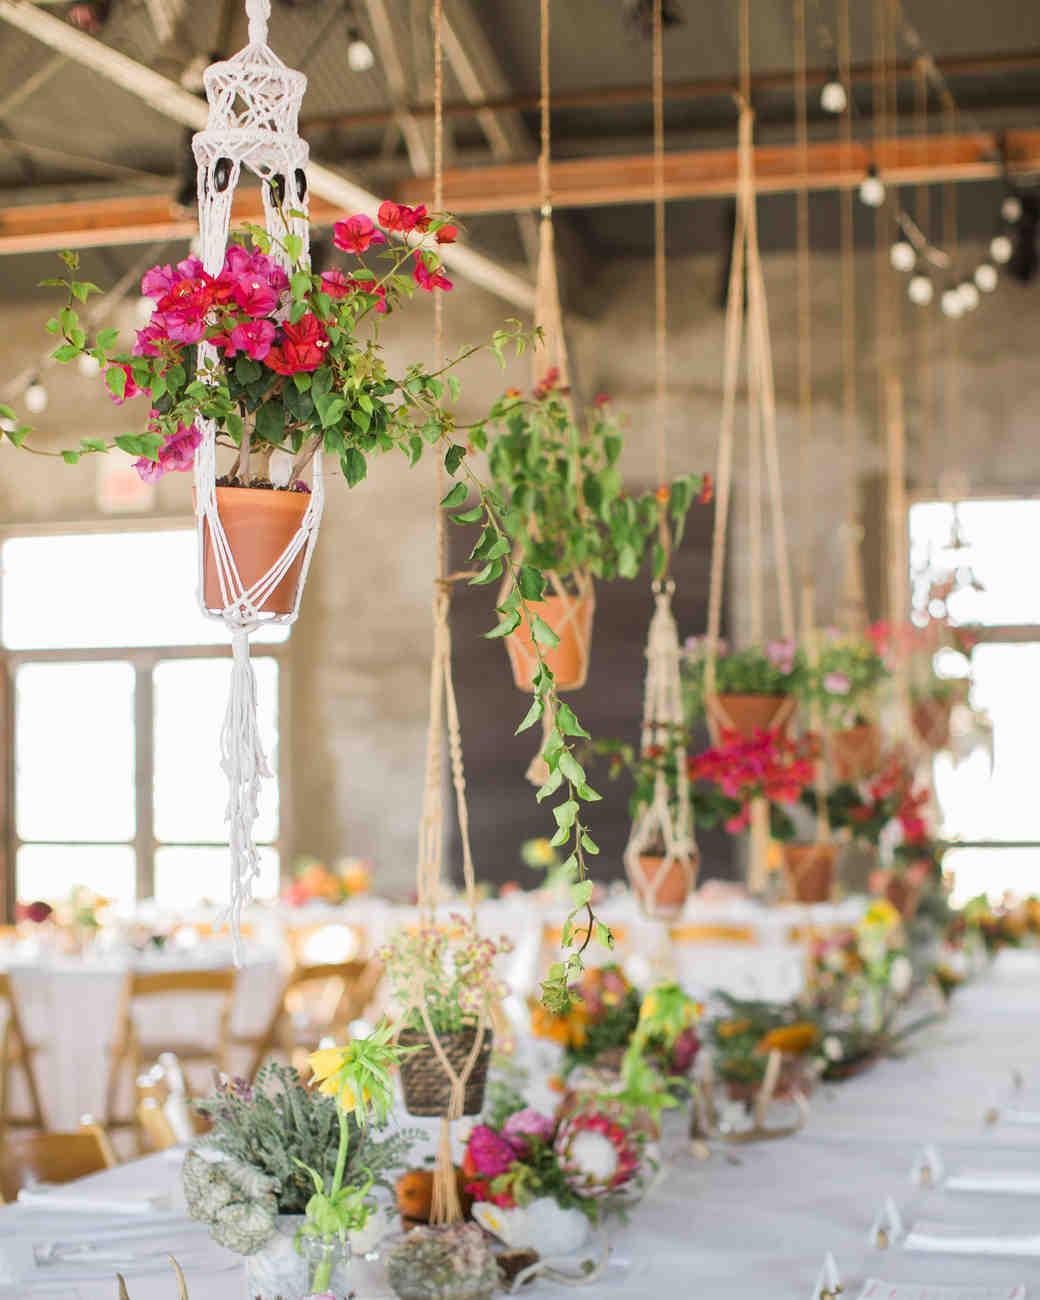 Boho Chic Wedding Ideas For Free Spirited Brides And